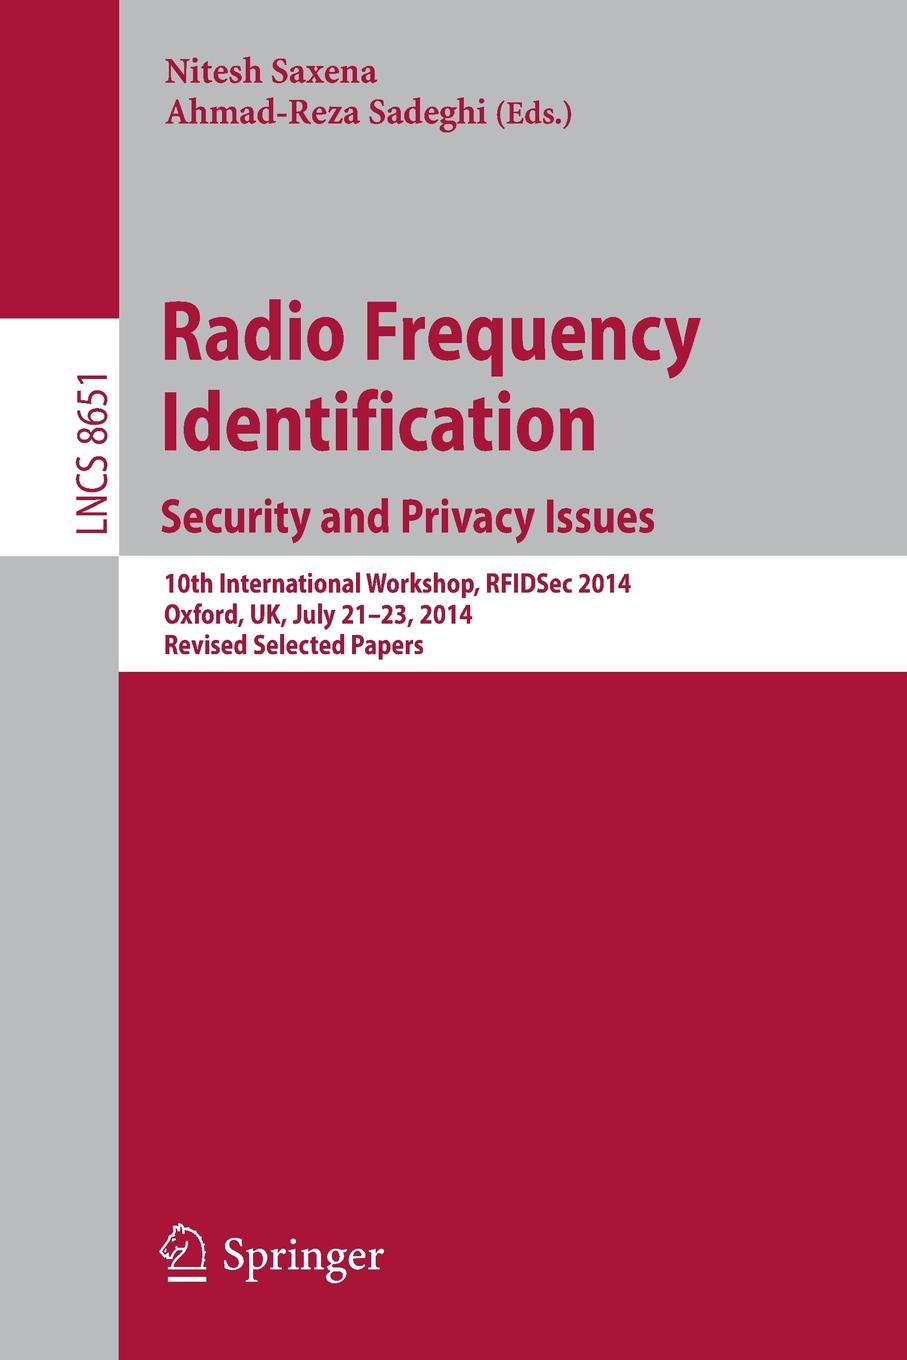 Radio Frequency Identification. Security and Privacy Issues : 10th International Workshop, RFIDSec 2014, Oxford, UK, July 21-23, 2014, Revised Selected Papers cyber security and privacy third cyber security and privacy eu forum csp forum 2014 athens greece may 21 22 2014 revised selected papers